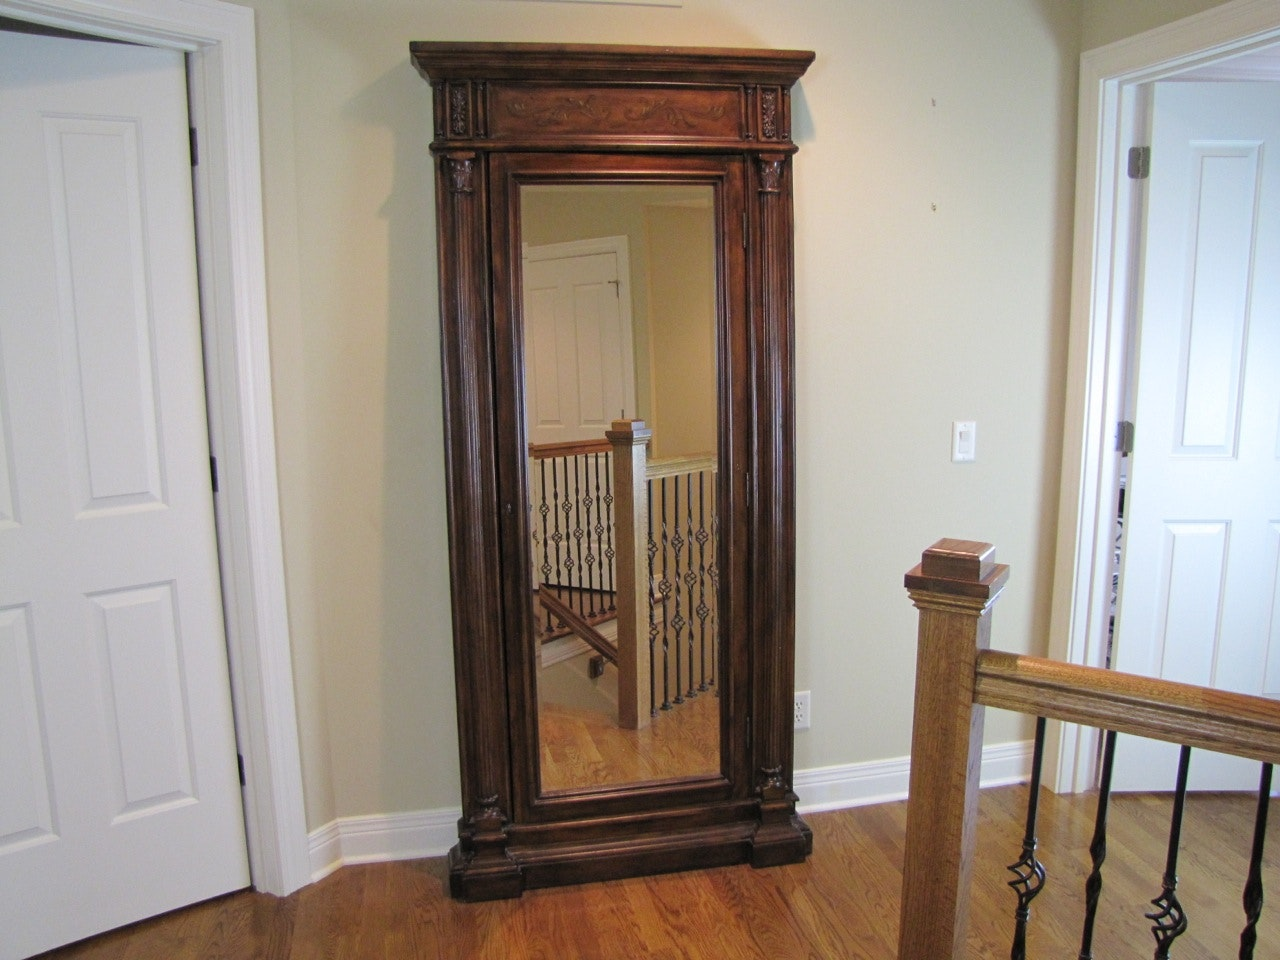 Ordinaire Hooker Furniture Accents Seven Seas Floor Mirror W/Jewelry Armoir ...